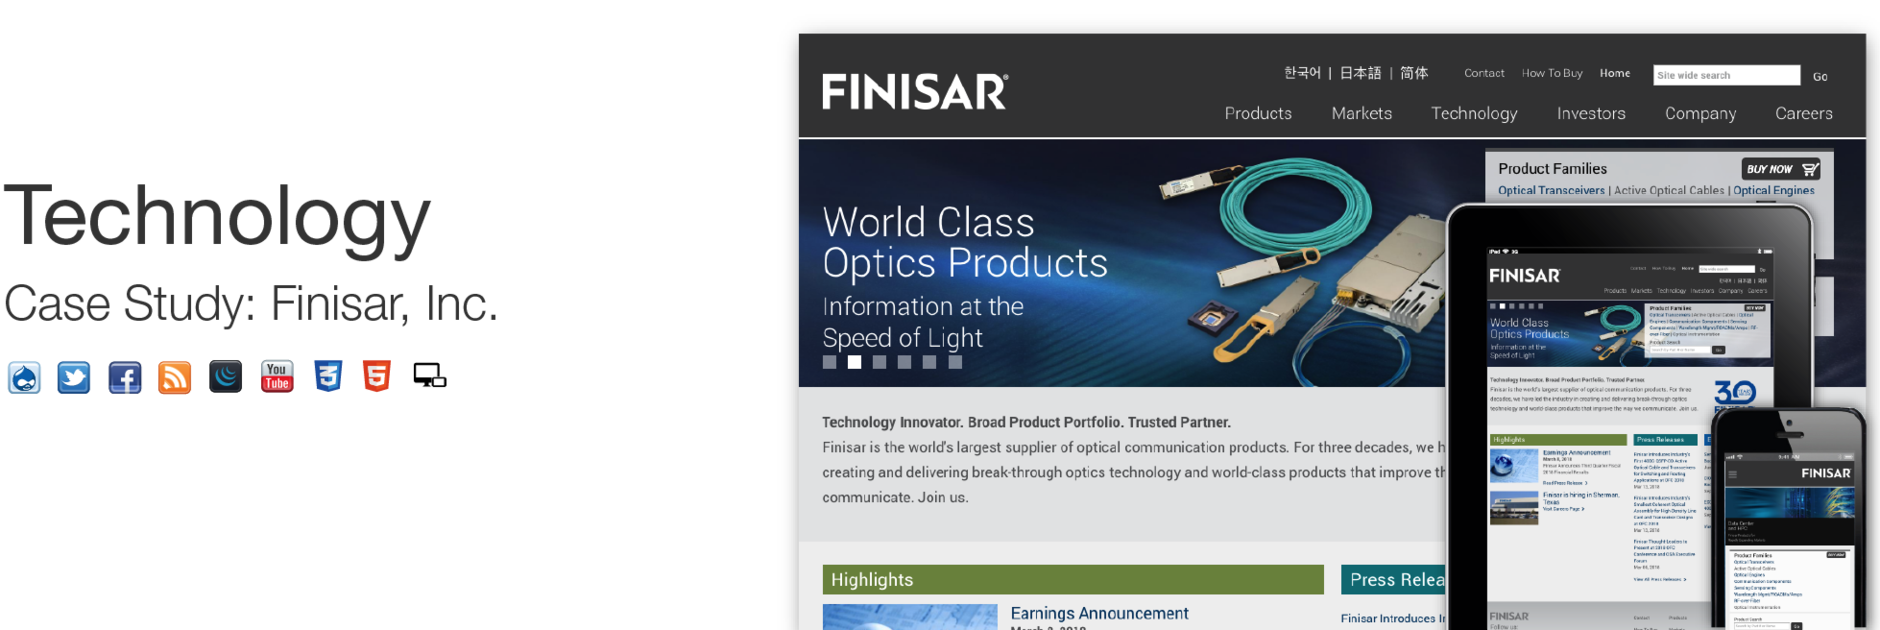 Finisar, Inc.